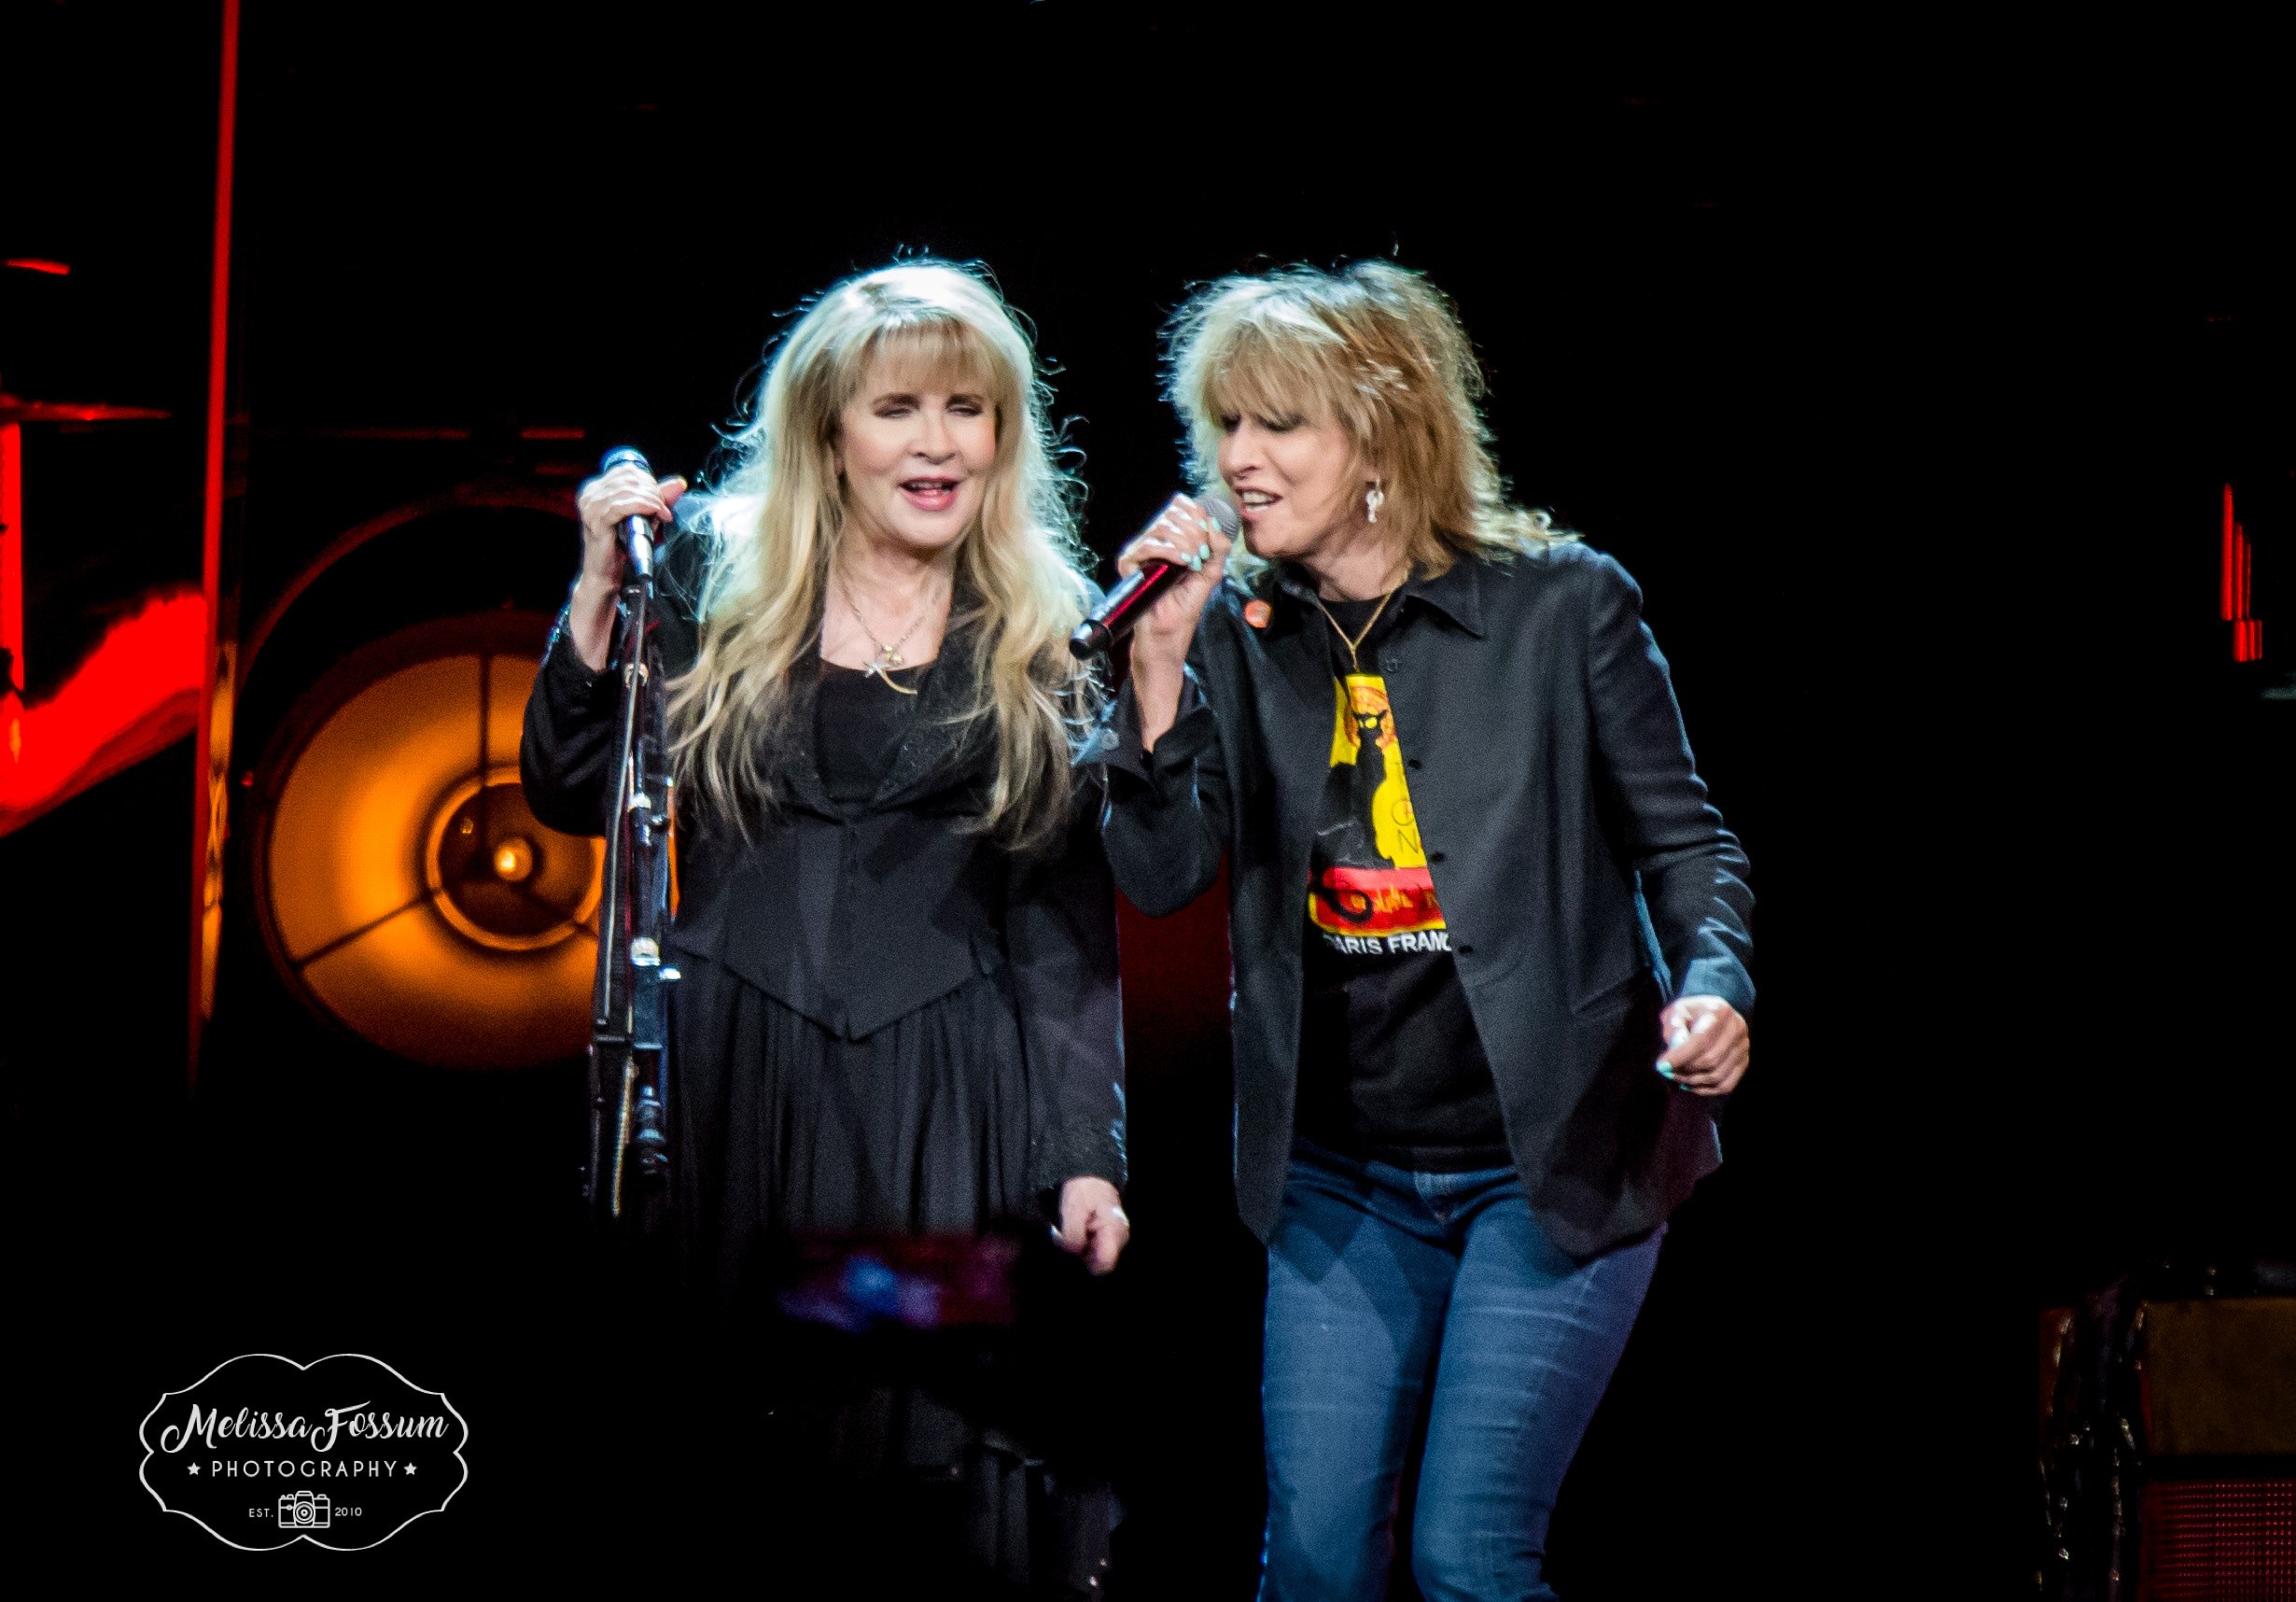 Stevie Nicks and Chrissie Hynde: Photo by Melissa Fossum